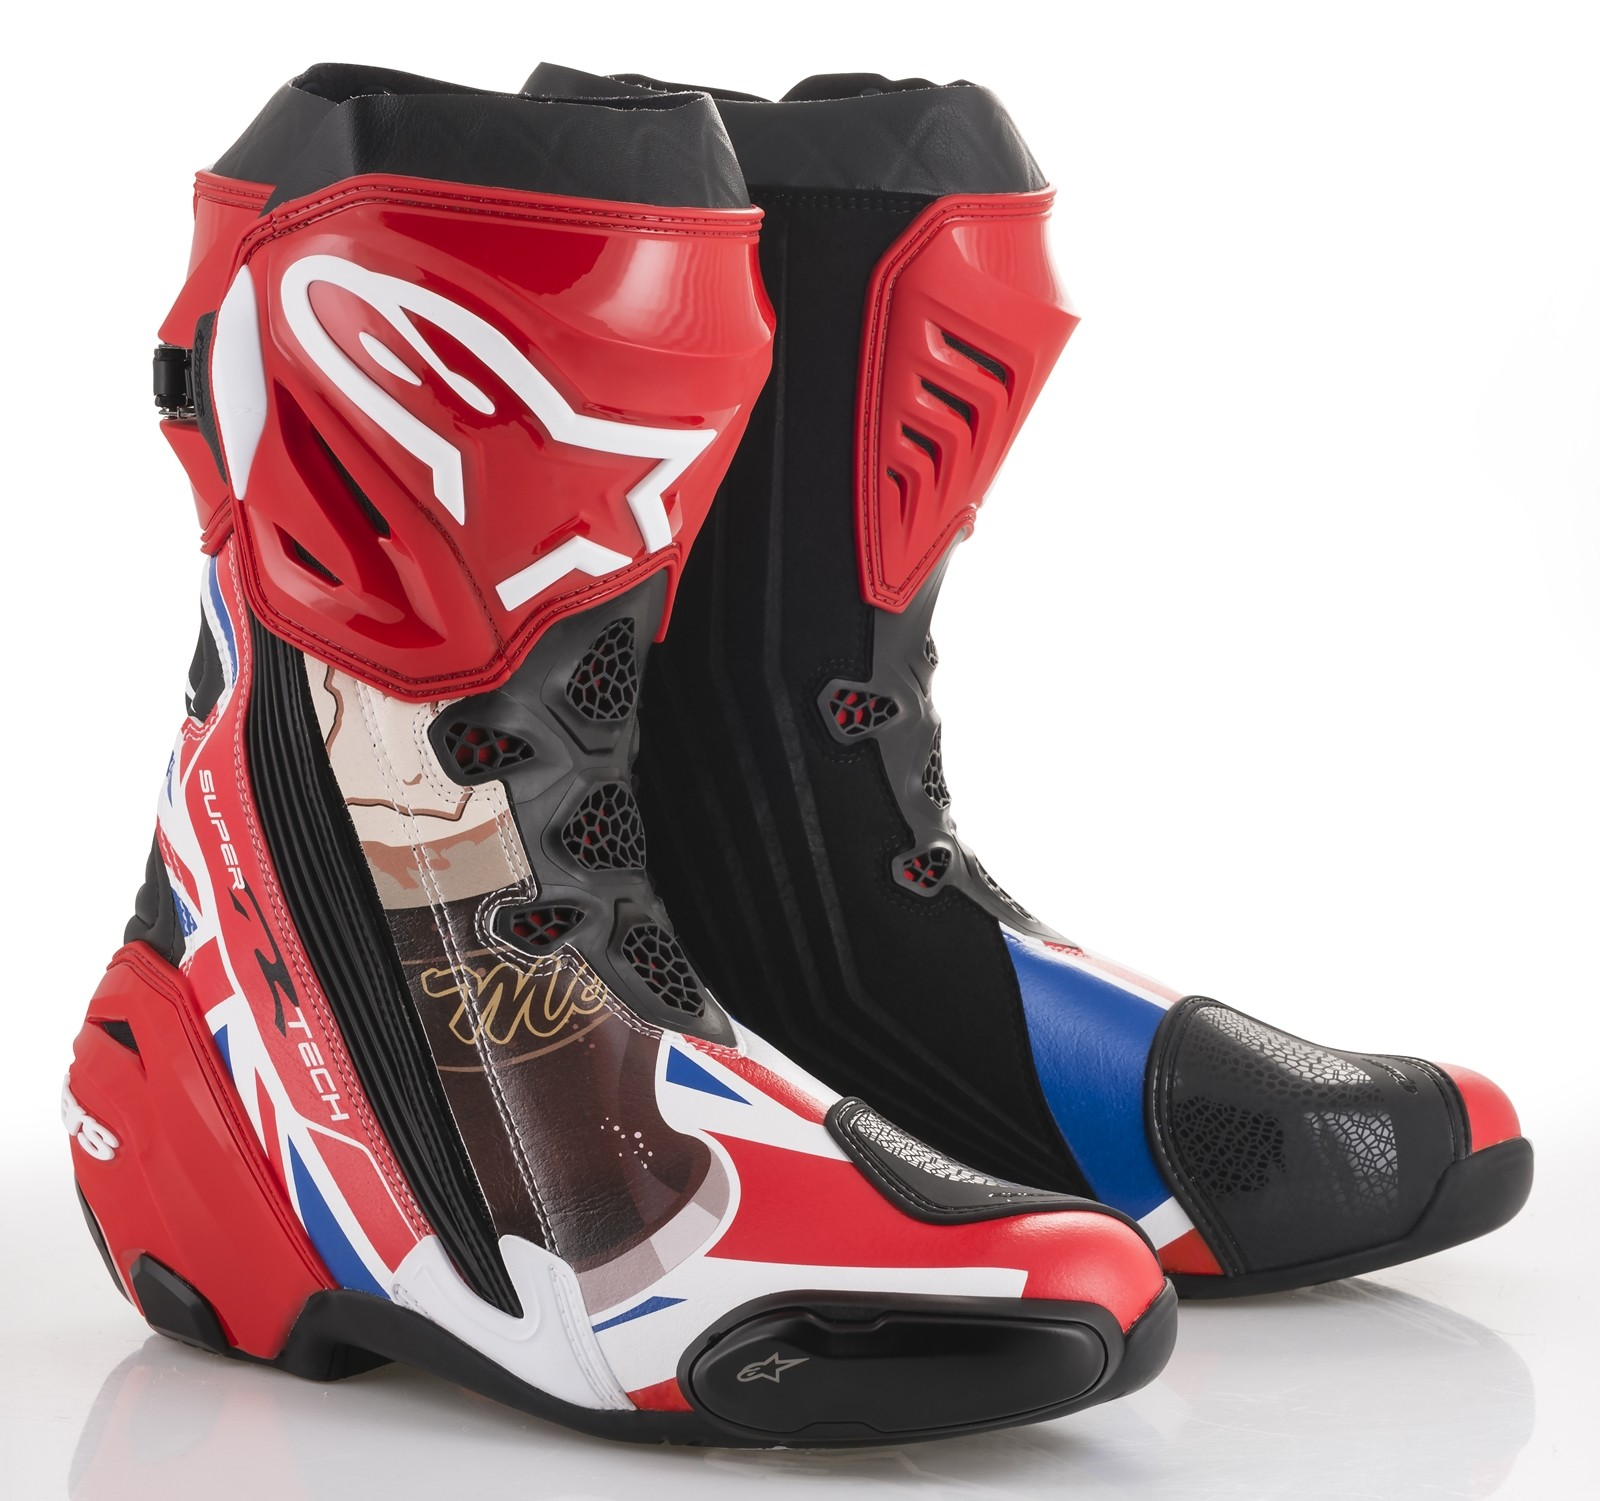 Foto de Alpinestars John McGuinness Limited Edition Supertech R 2018 (6/11)